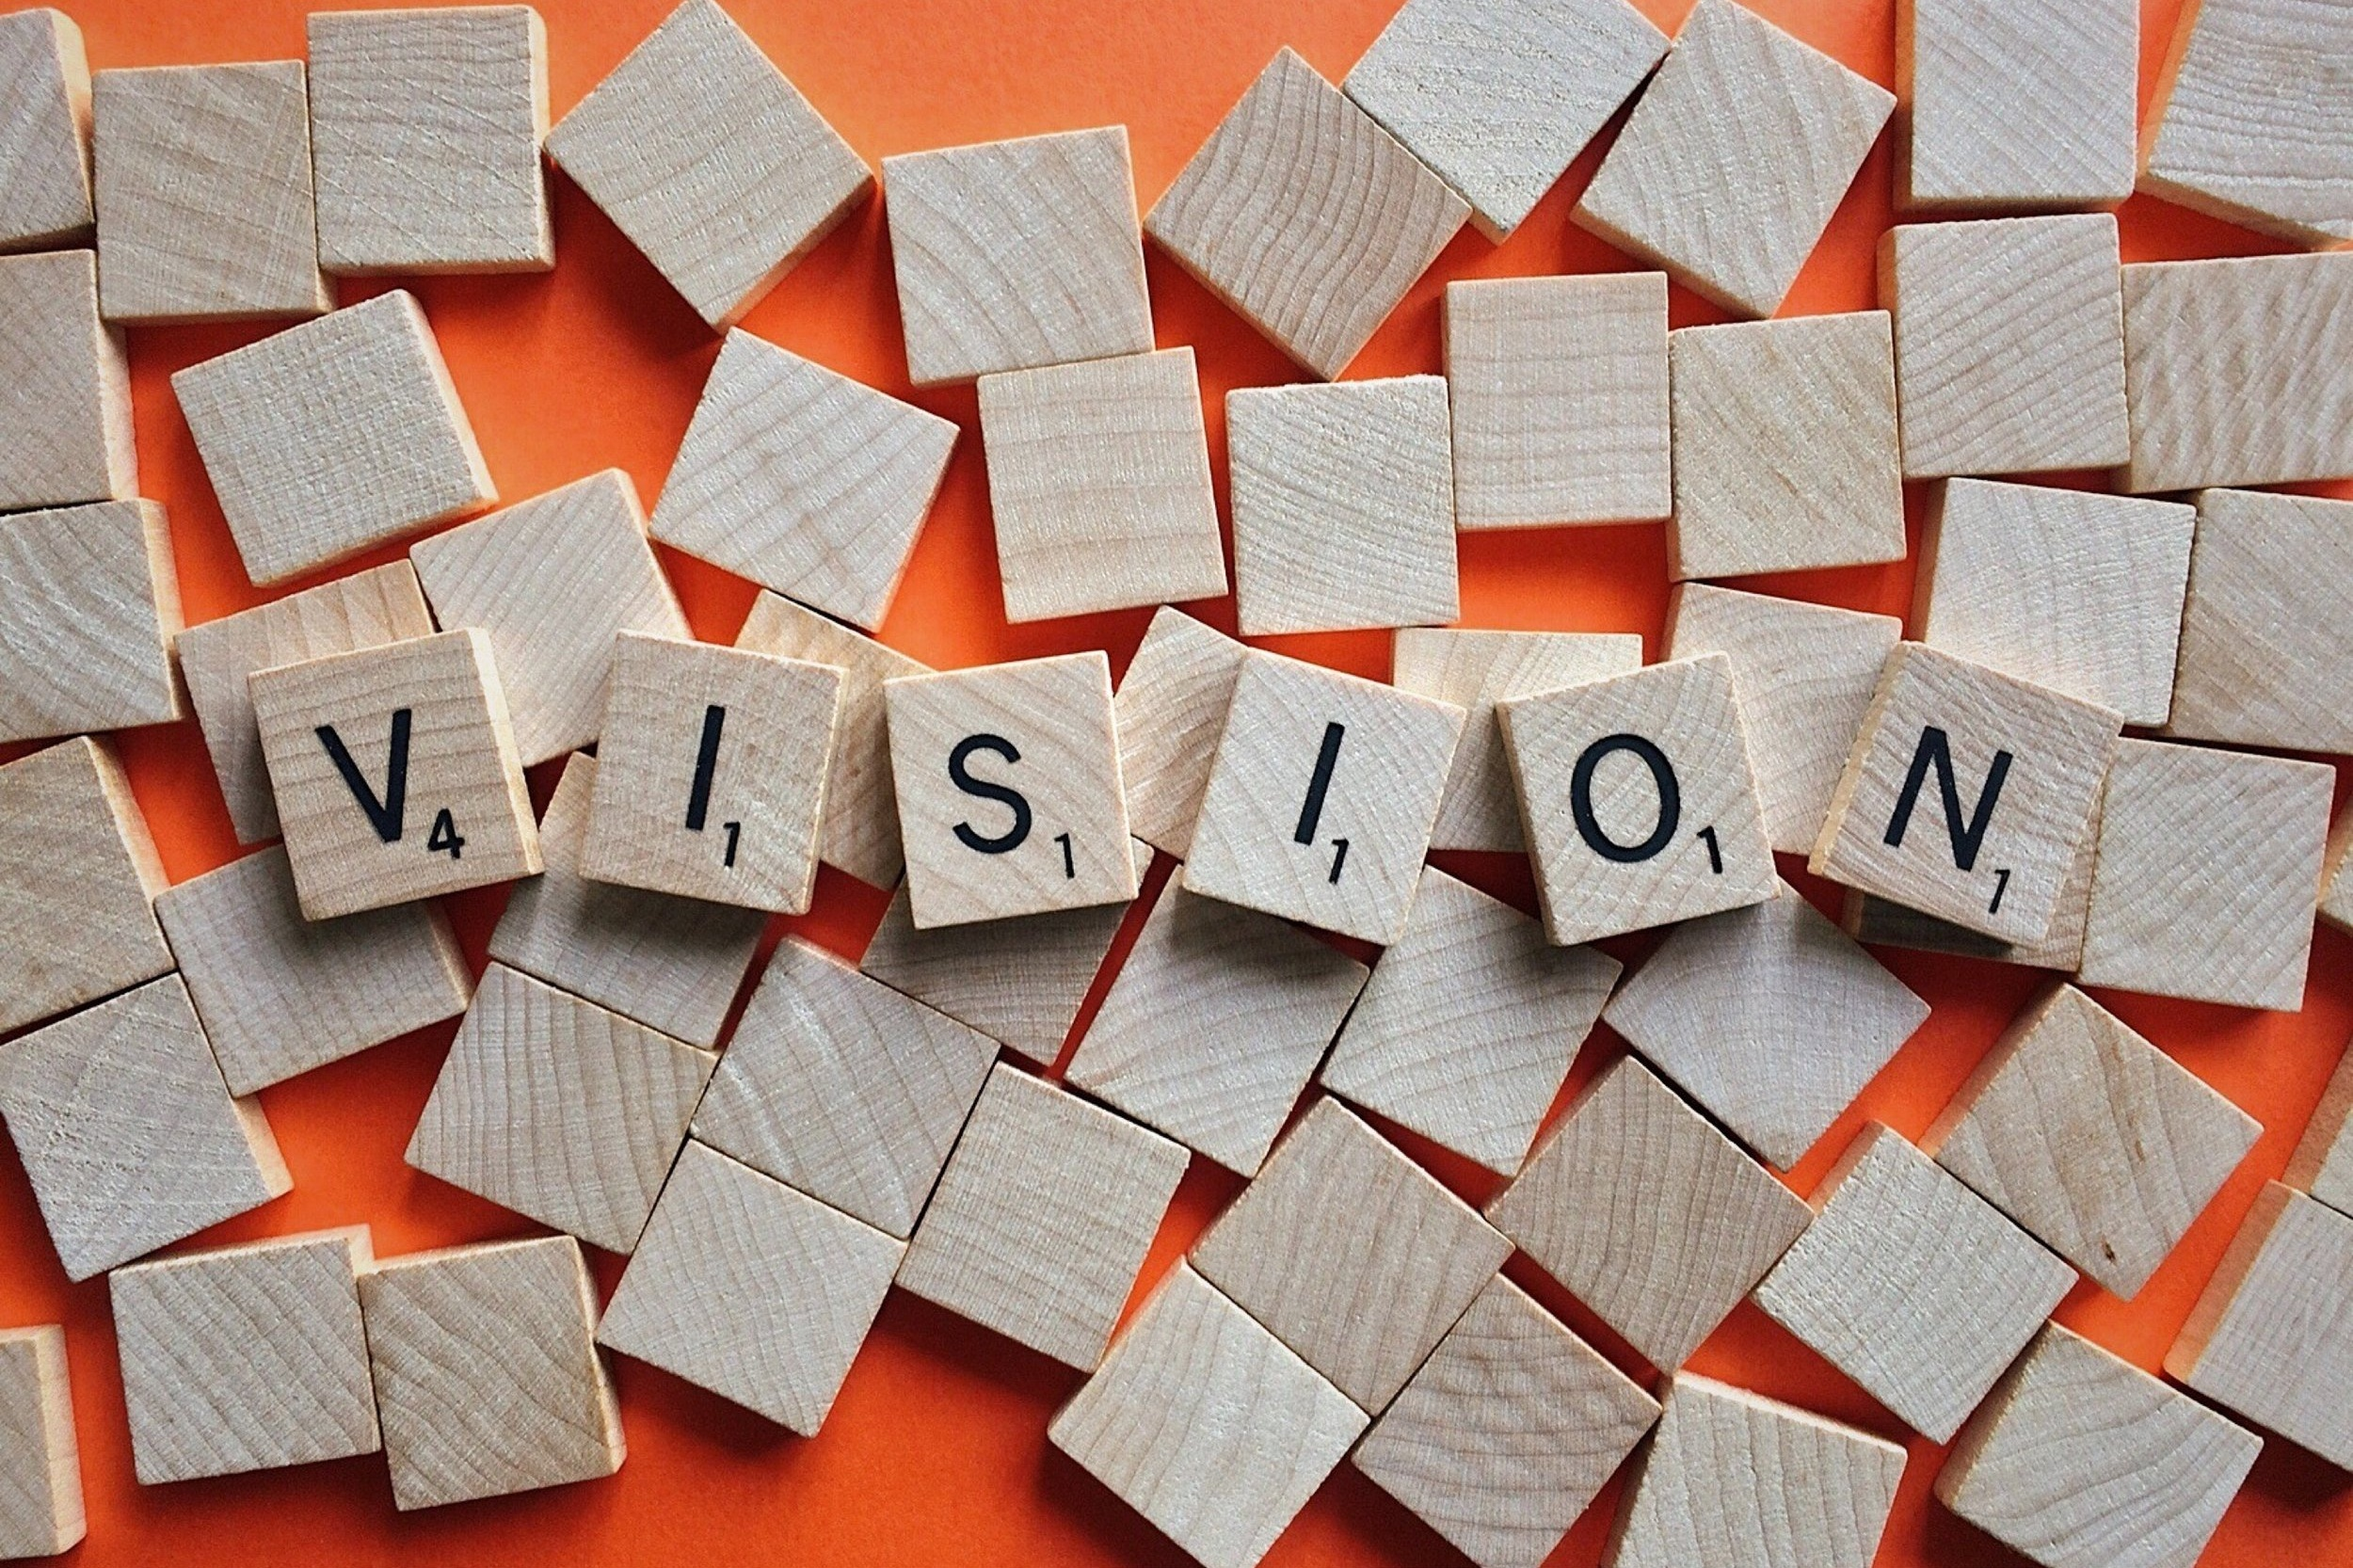 Vision & Values -